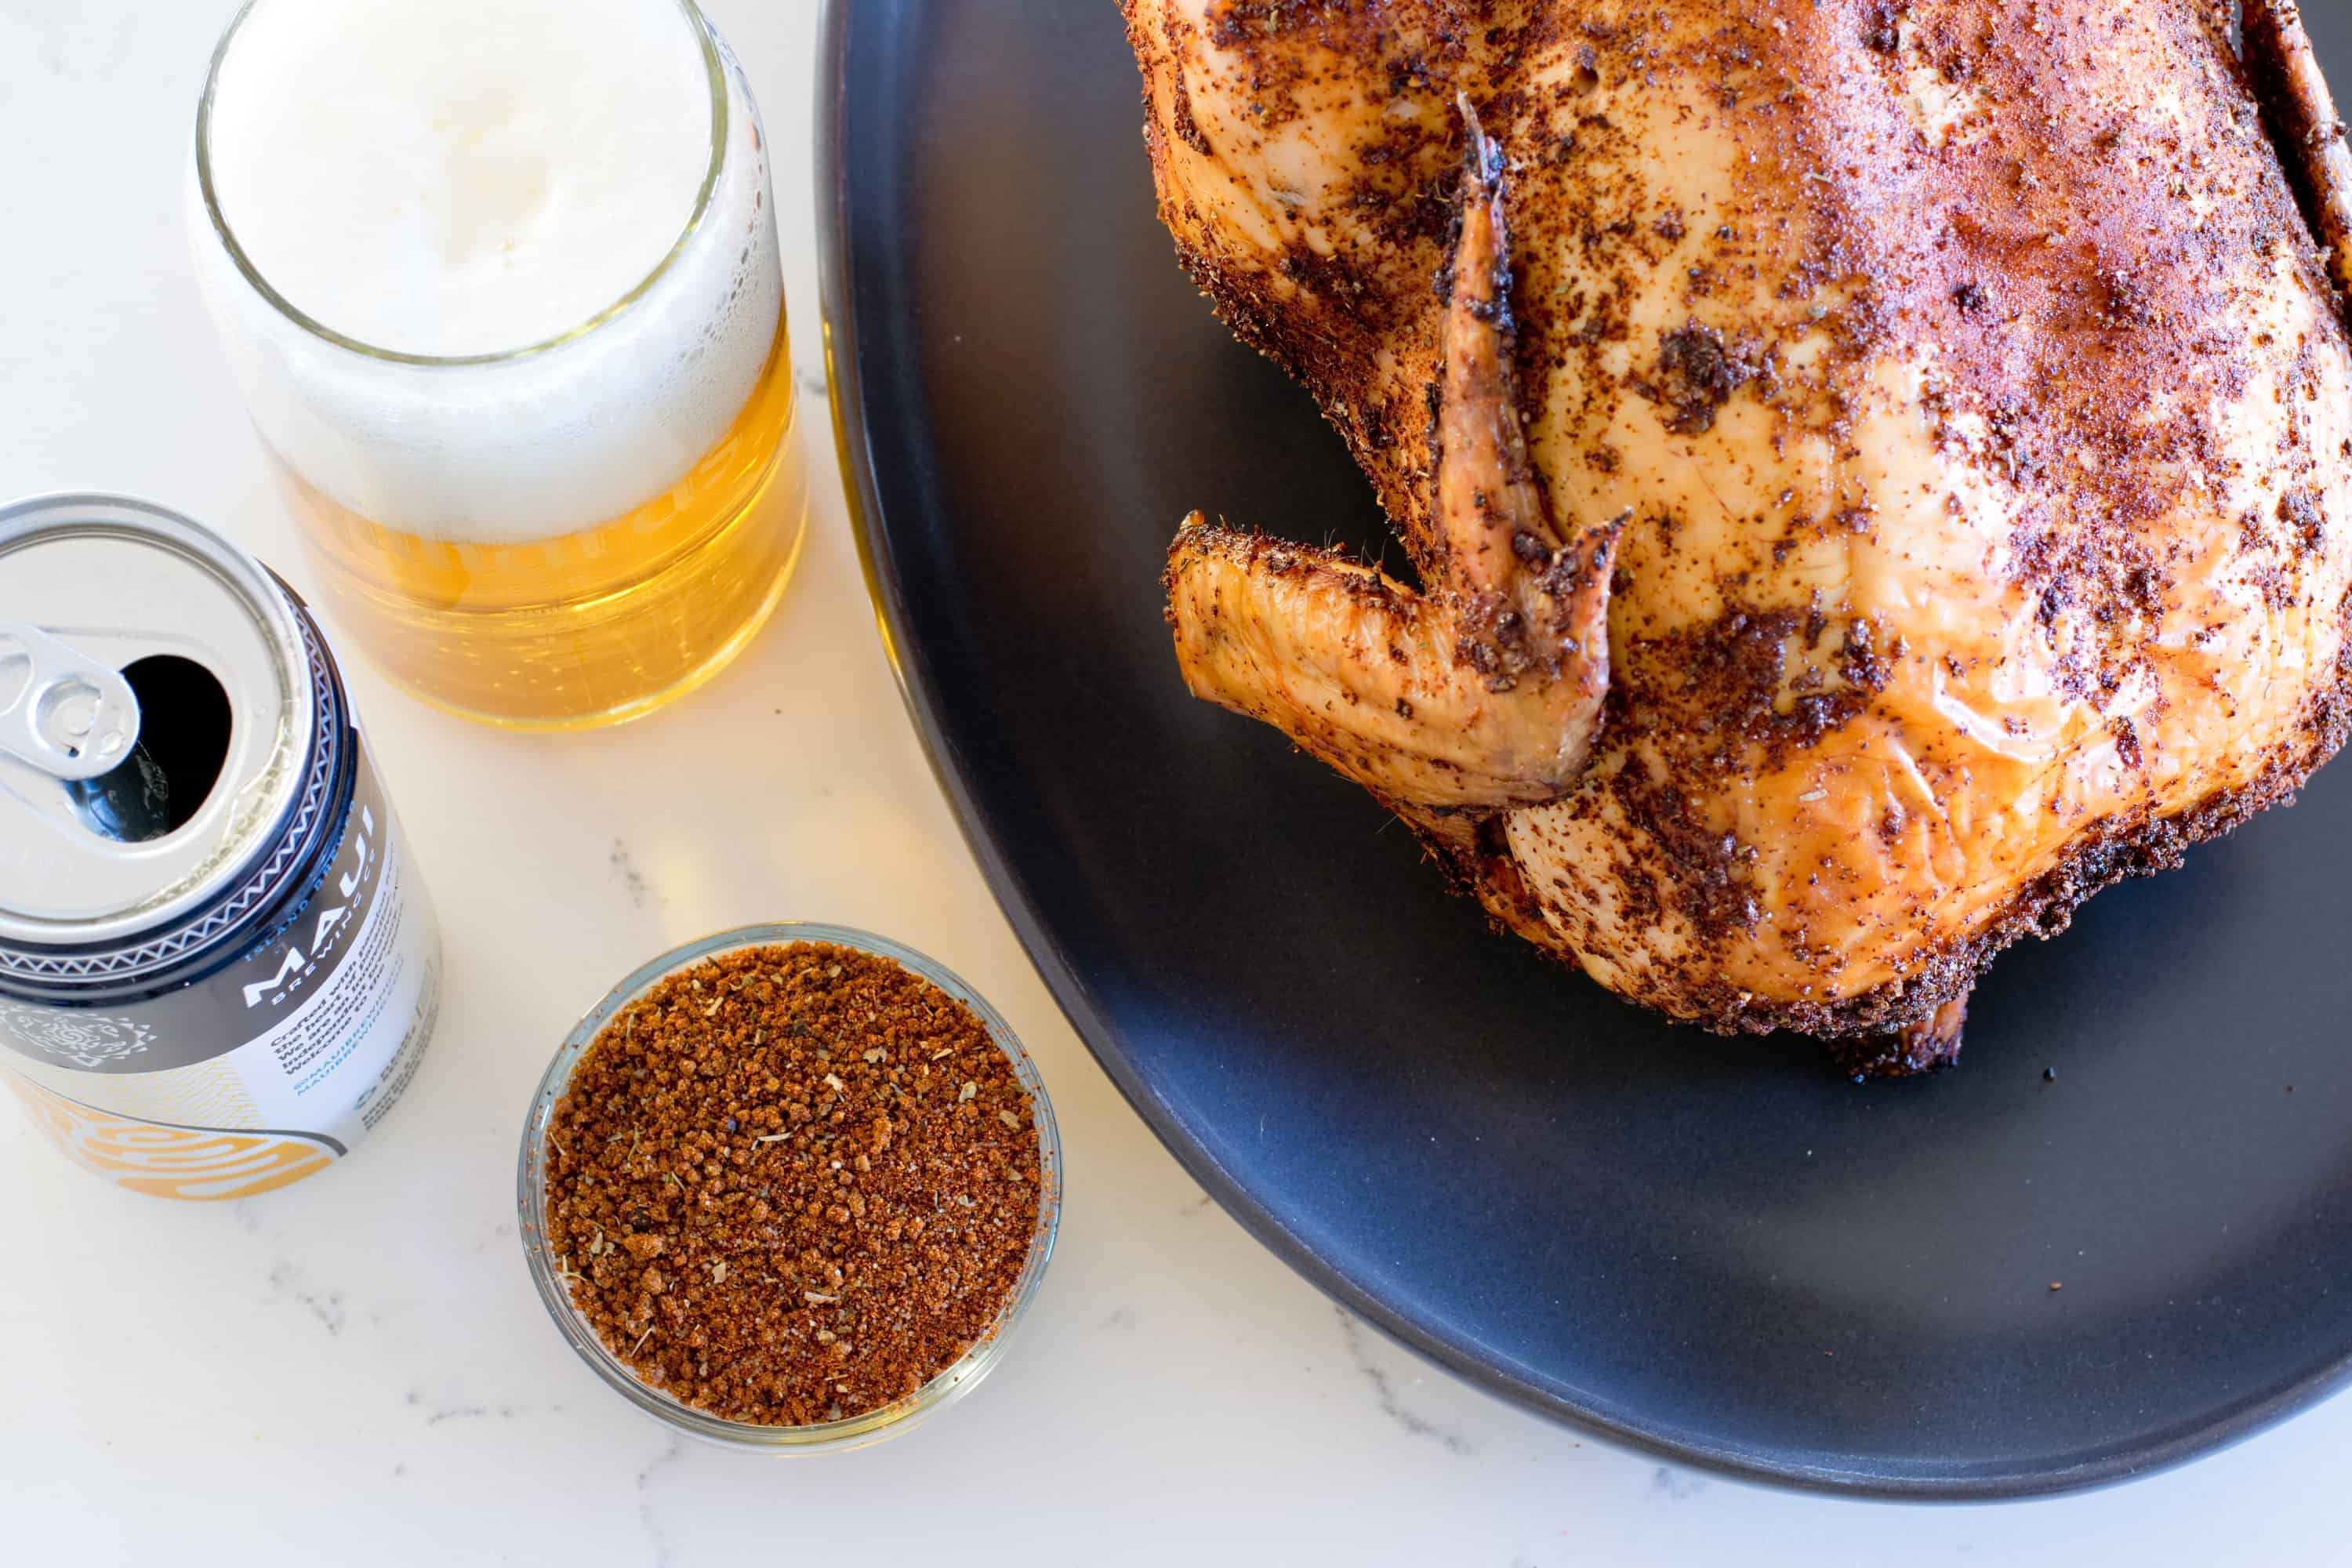 awesome beer can chicken on a dark platter next to a glass and can of beer.